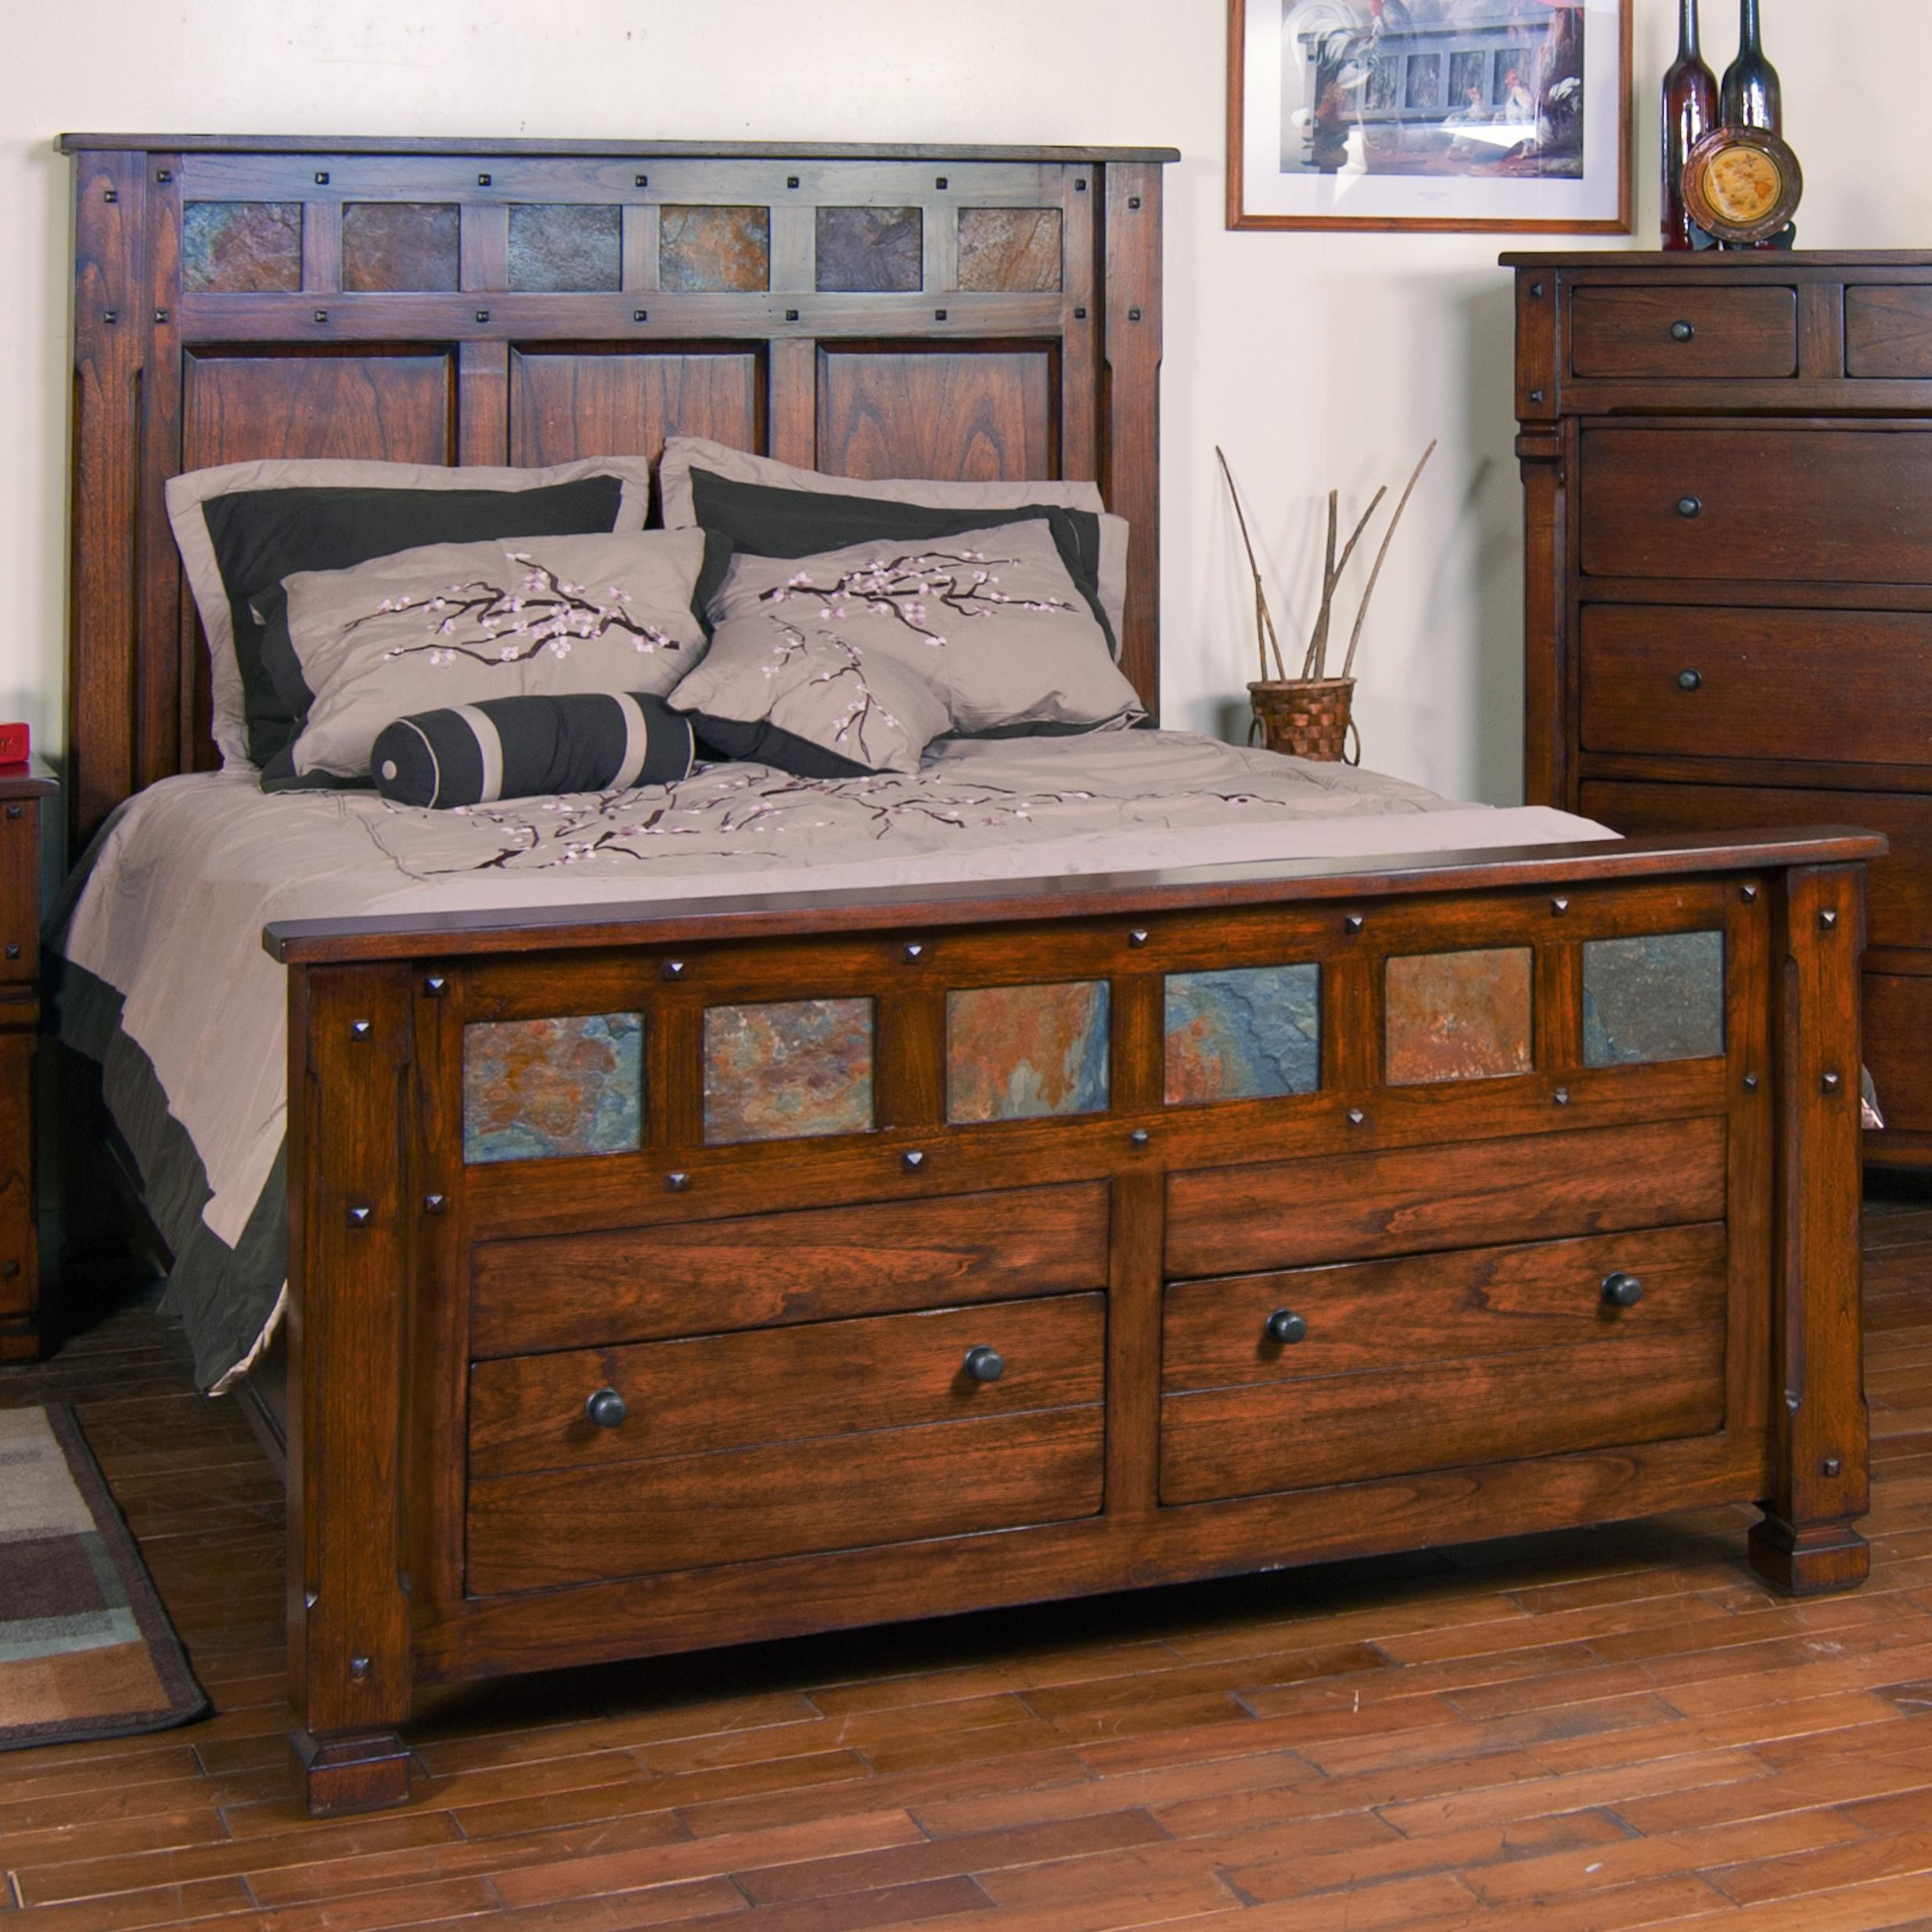 Santa fe king storage bed with slate by sunny designs for Santa fe designs